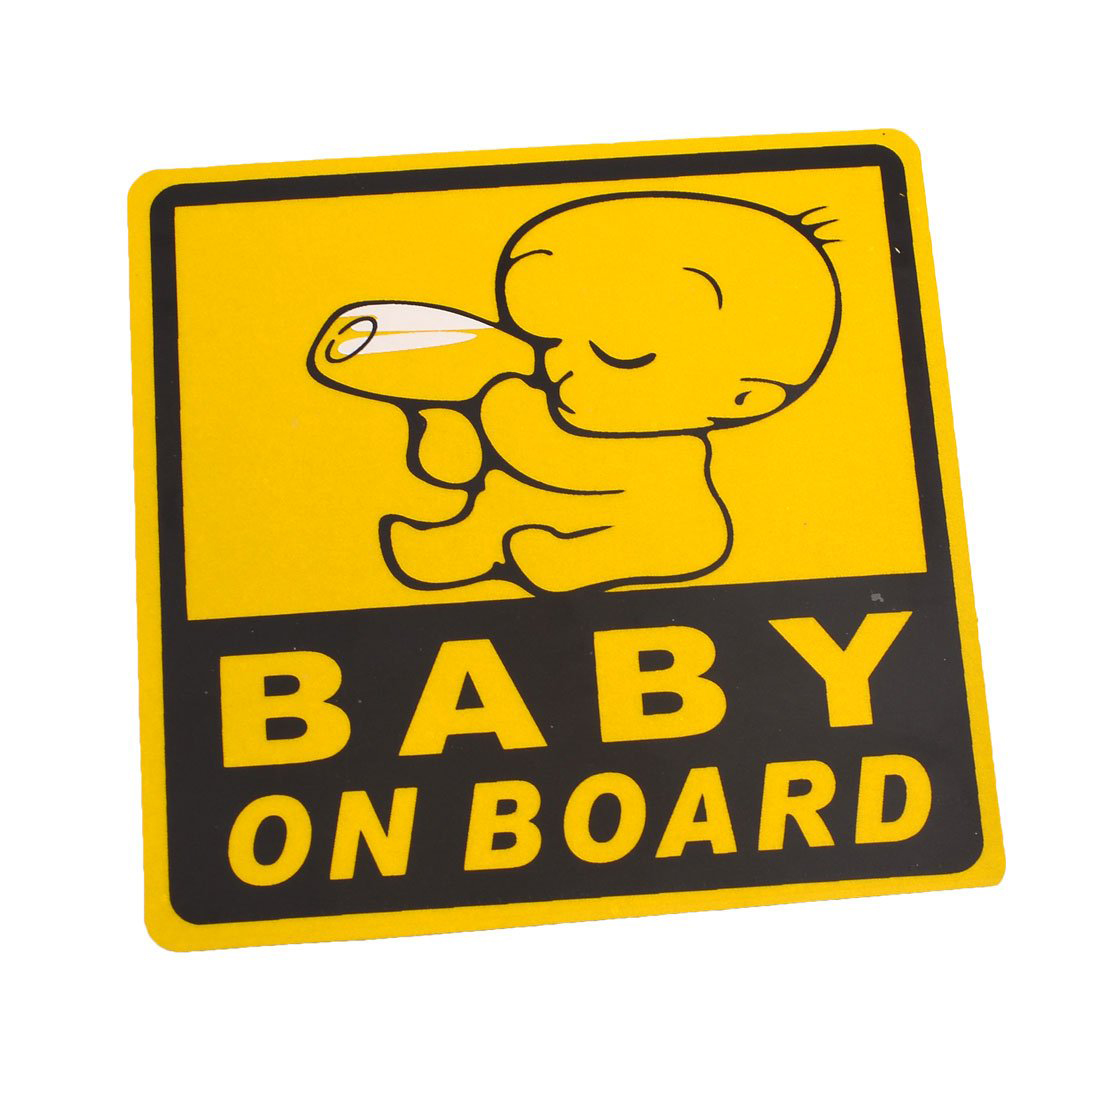 car exterior baby on board safety sign sticker decal 11cm x 11cm cp. Black Bedroom Furniture Sets. Home Design Ideas